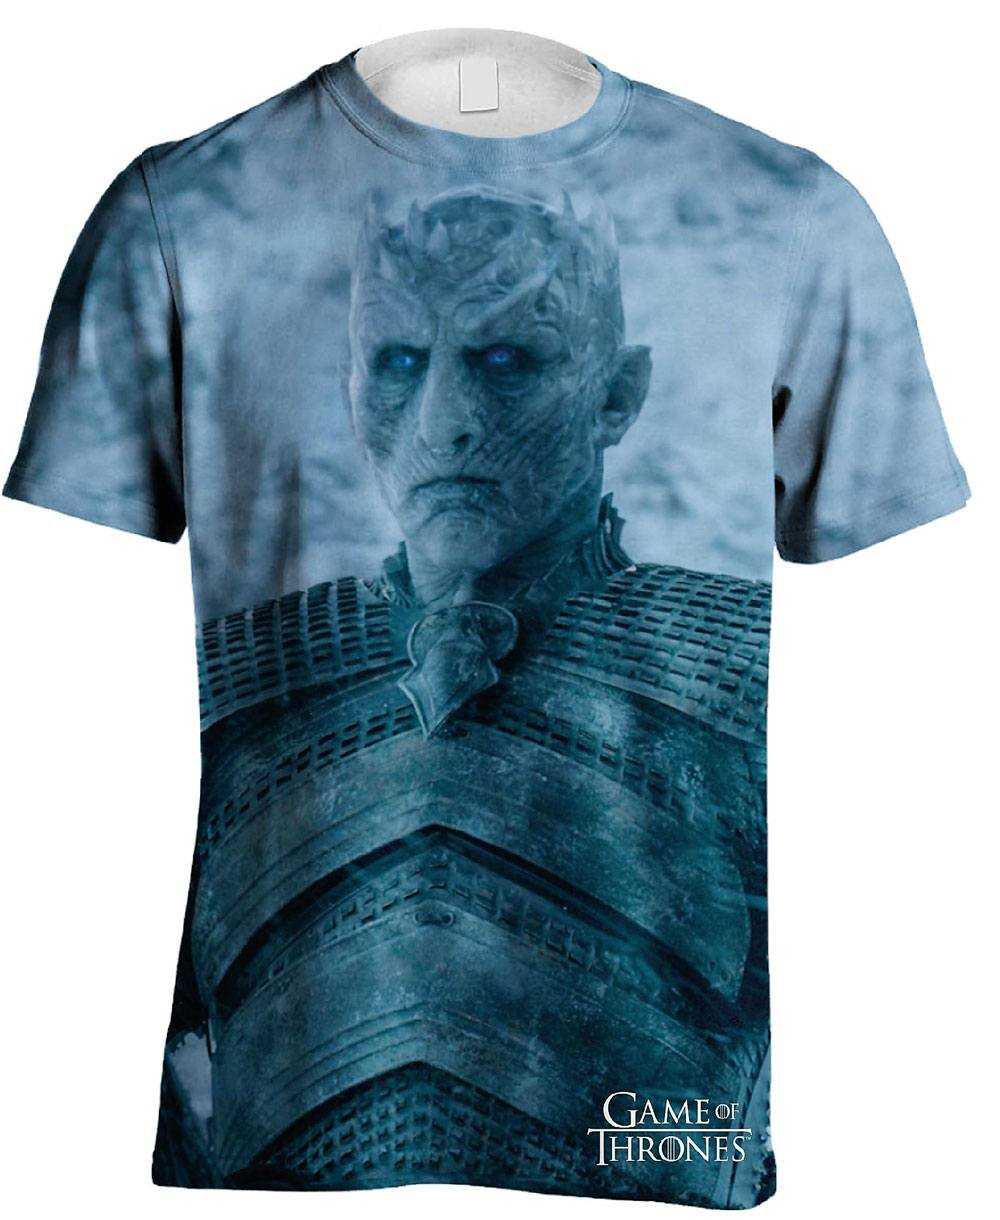 Game of Thrones Sublimation T-Shirt Night King Sublimation Size S